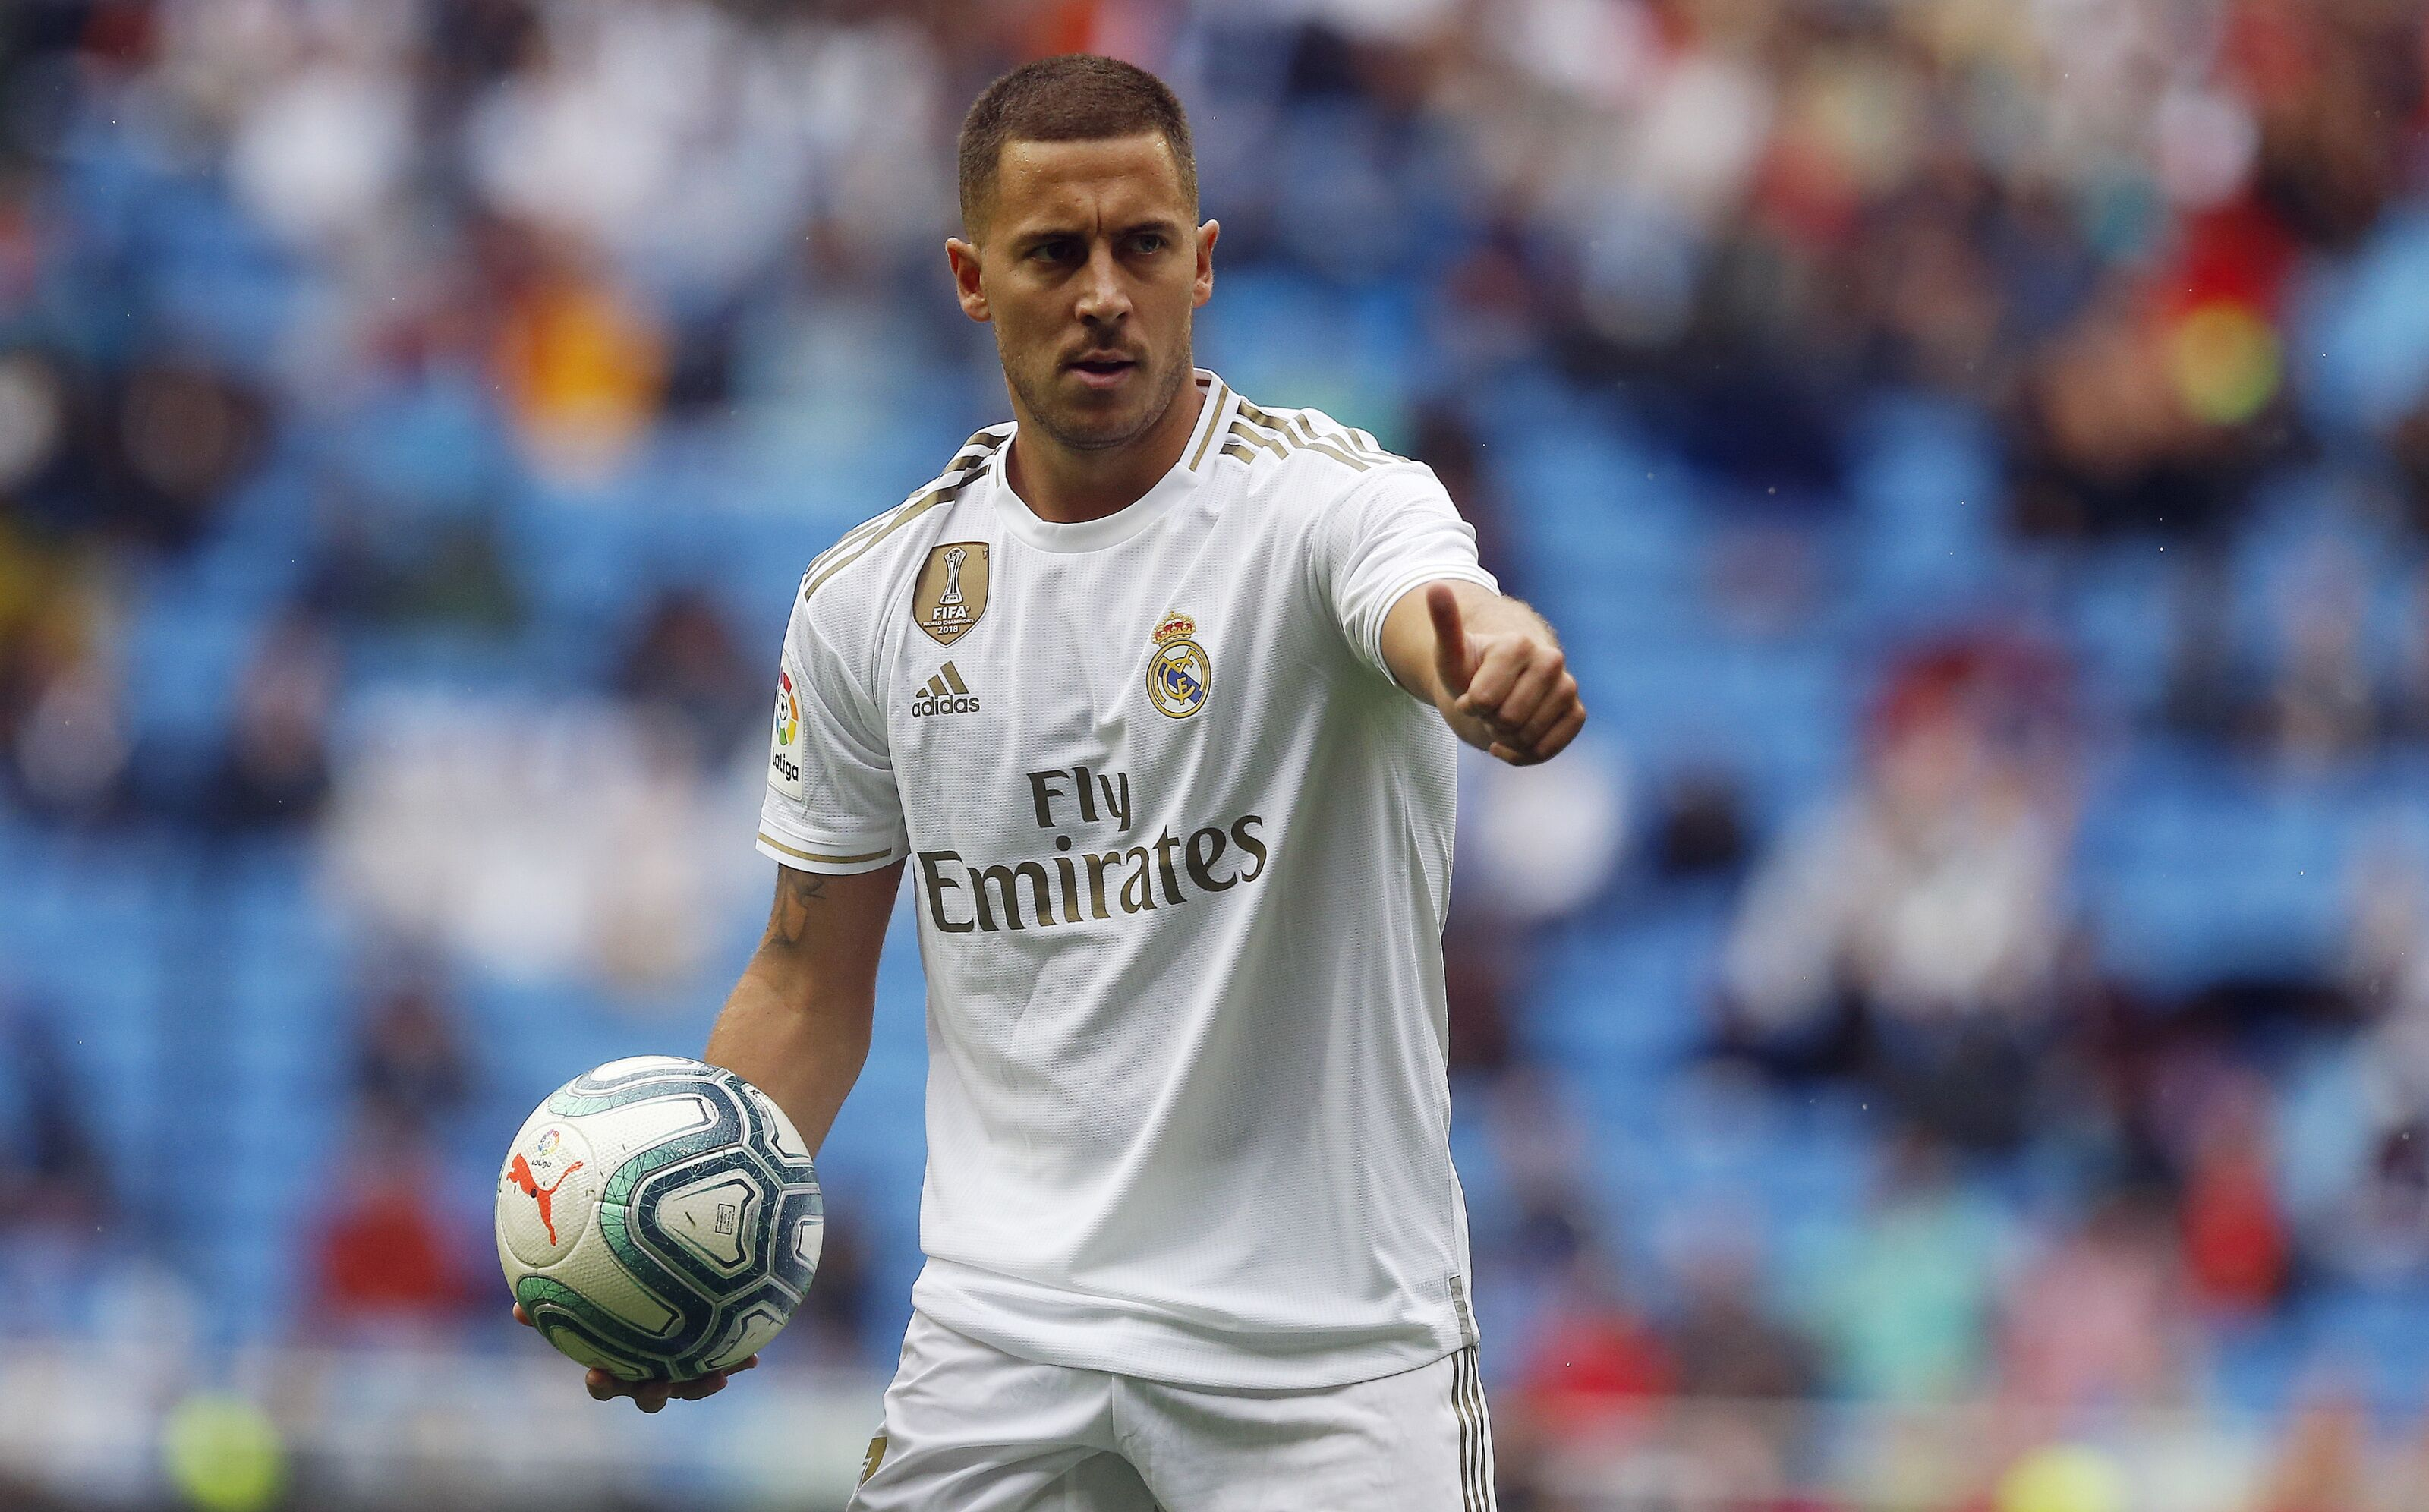 Real Madrid: 3 players to watch against PSG